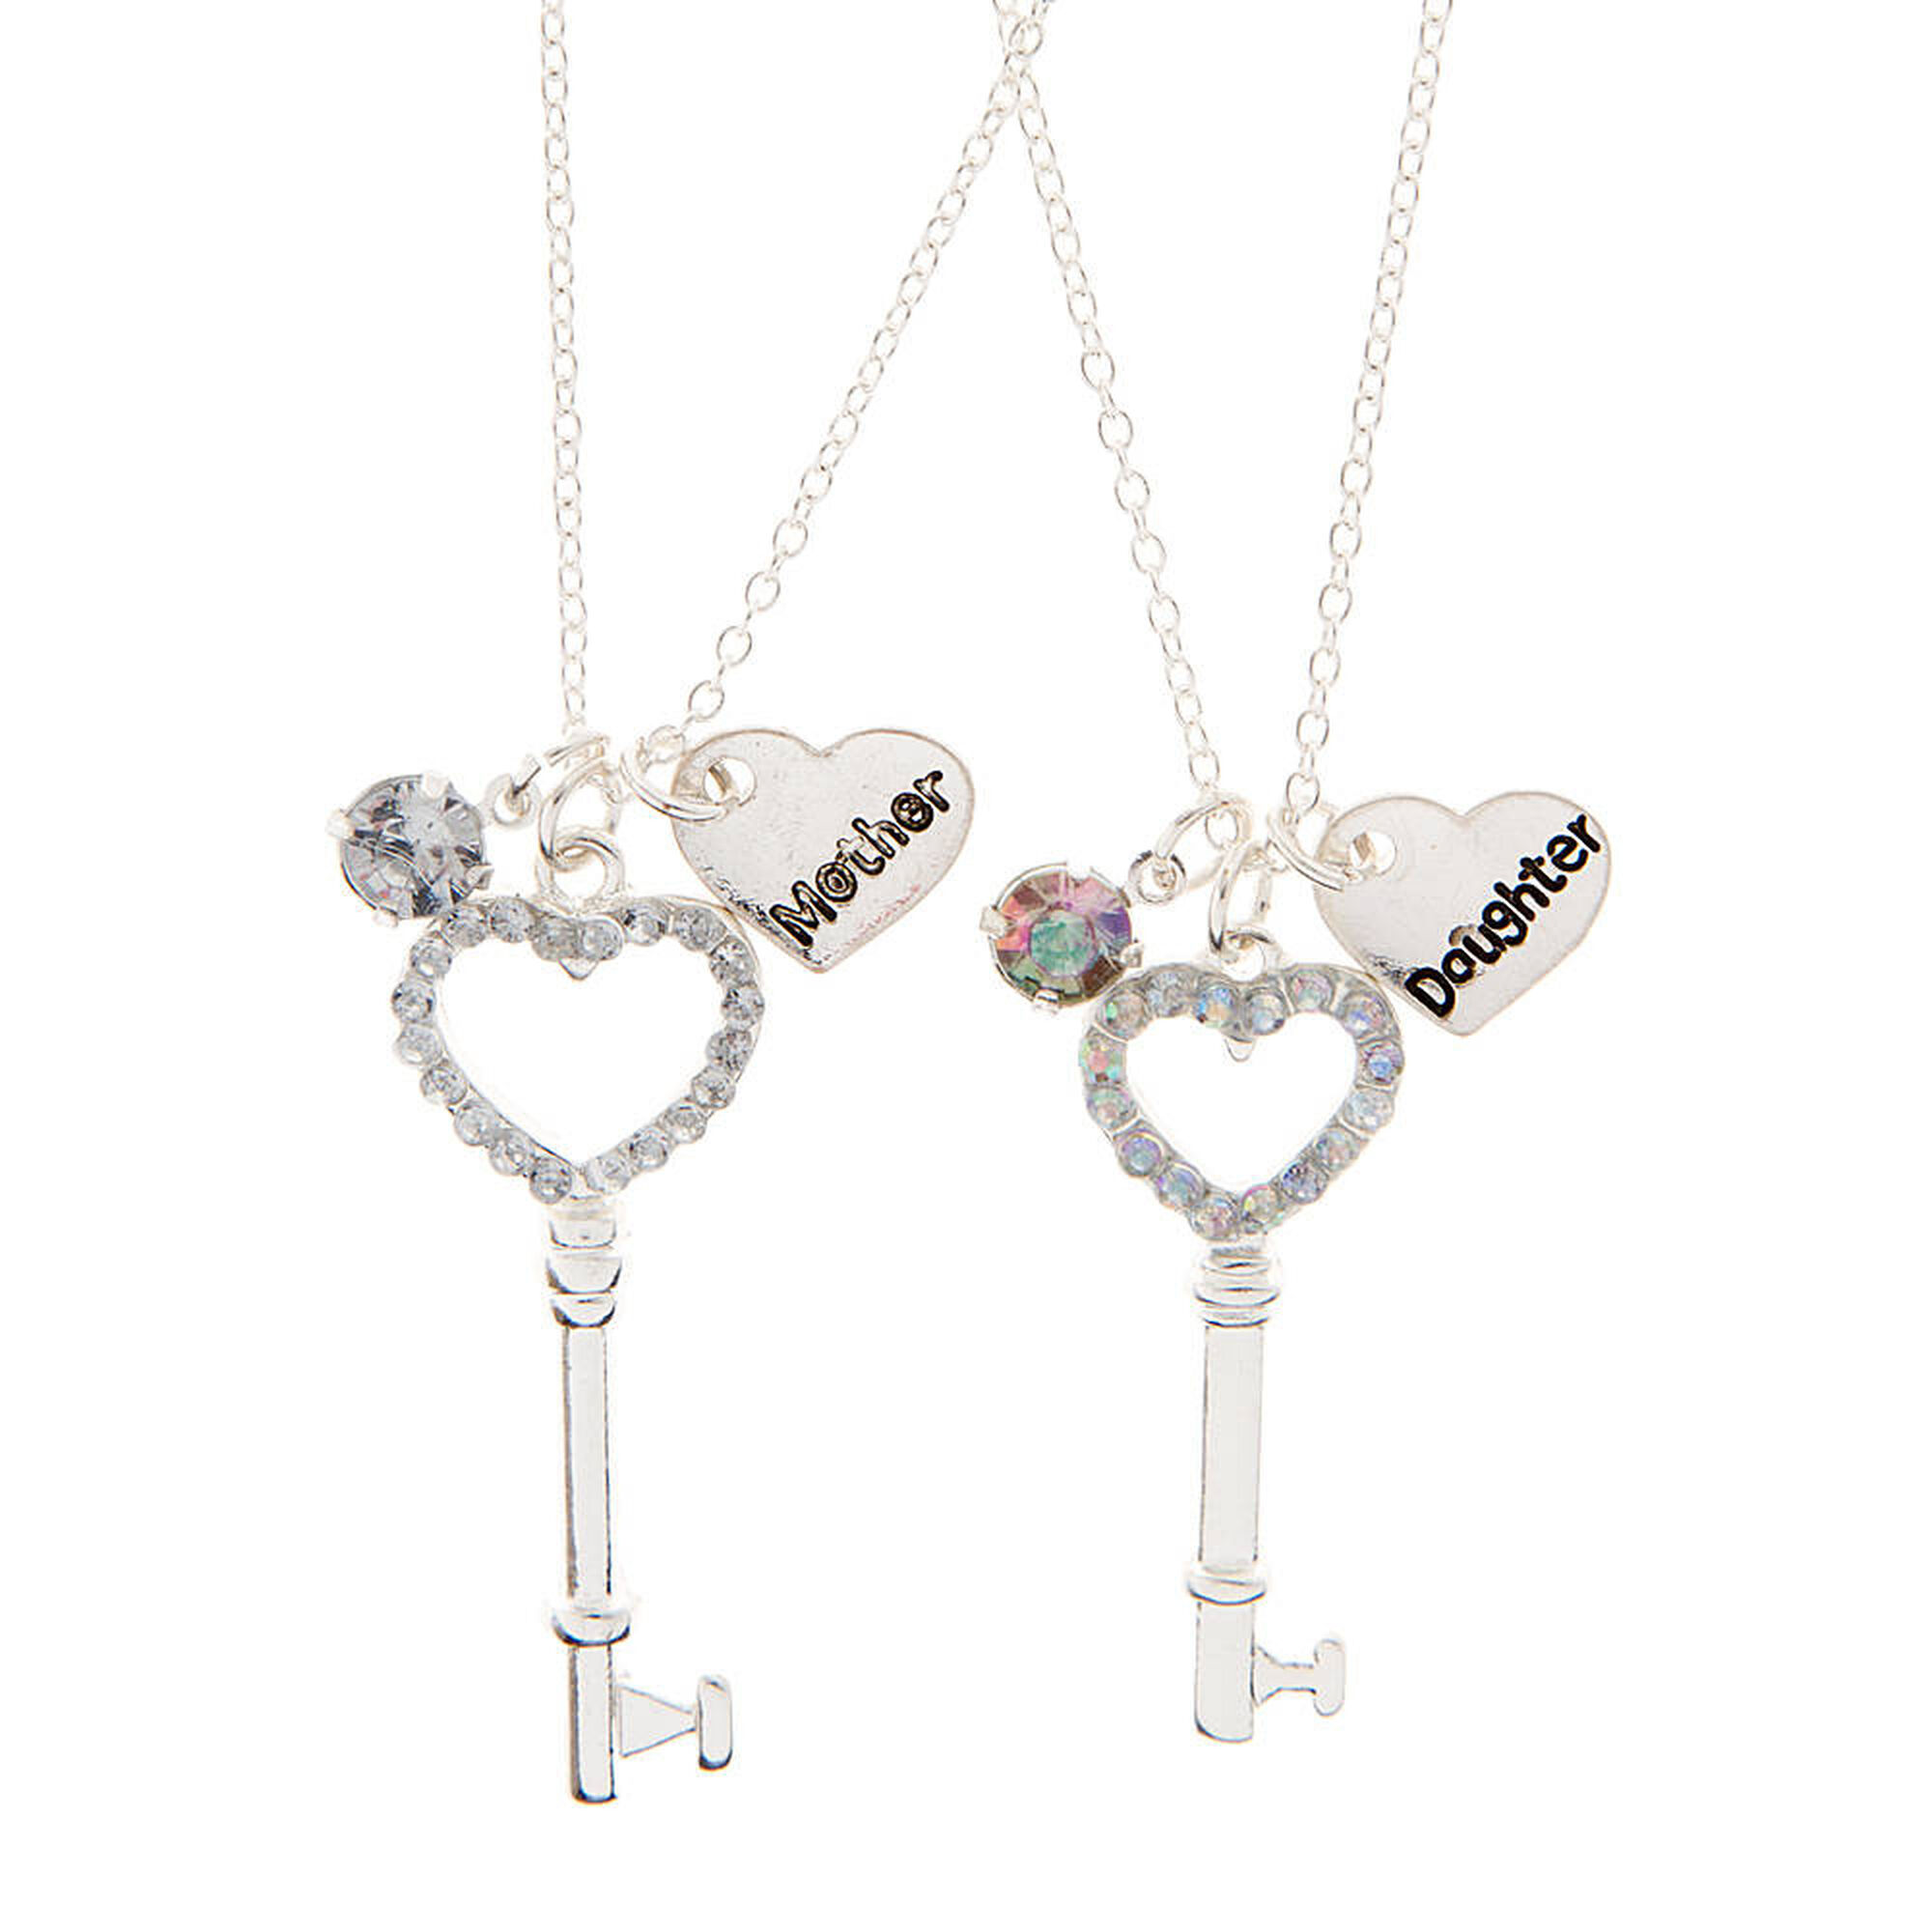 Best friends mother daughter rhinestone heart key pendant necklaces best friends mother daughter rhinestone heart key pendant necklaces aloadofball Images